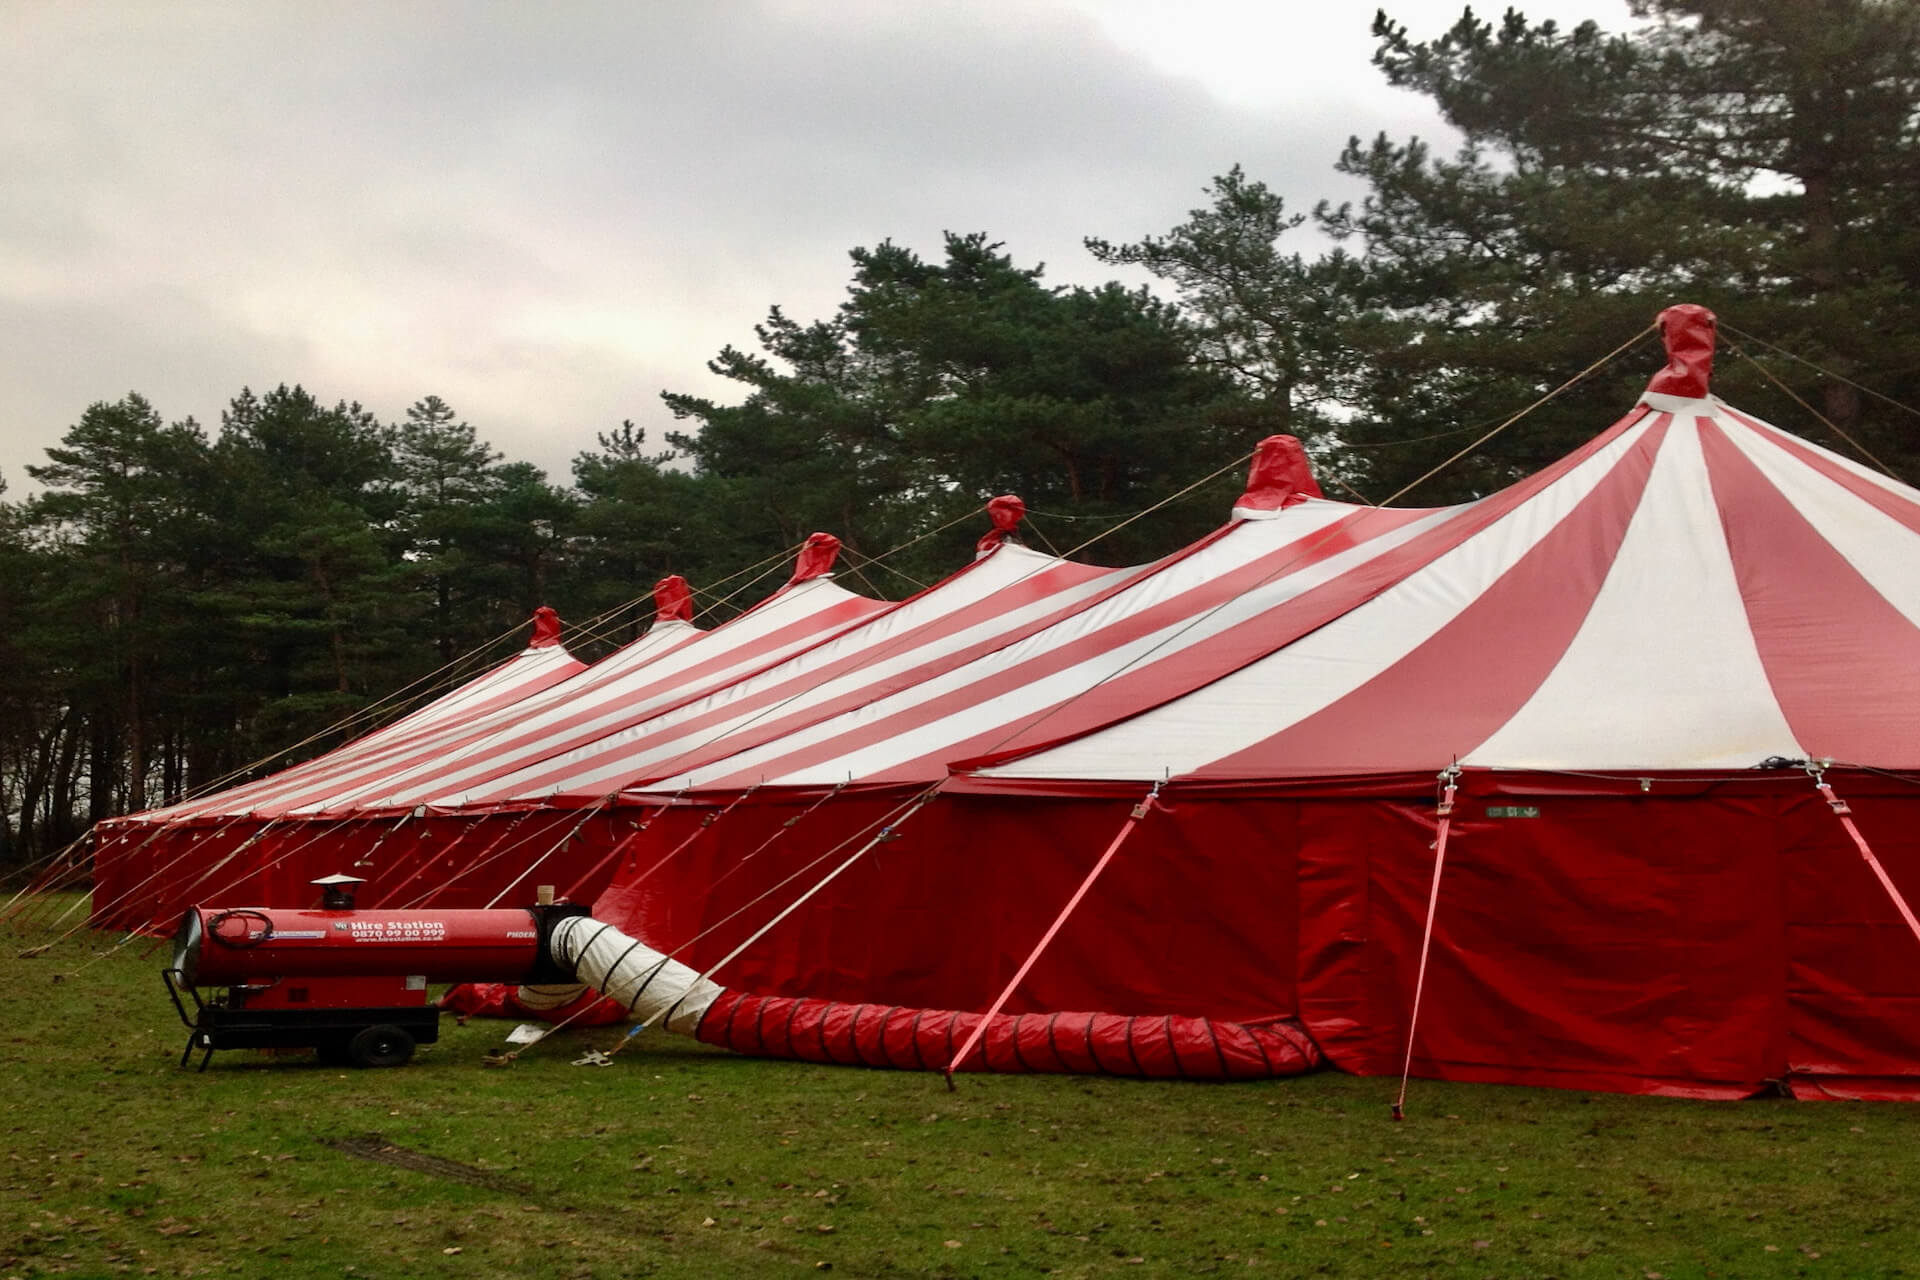 A large warm tent